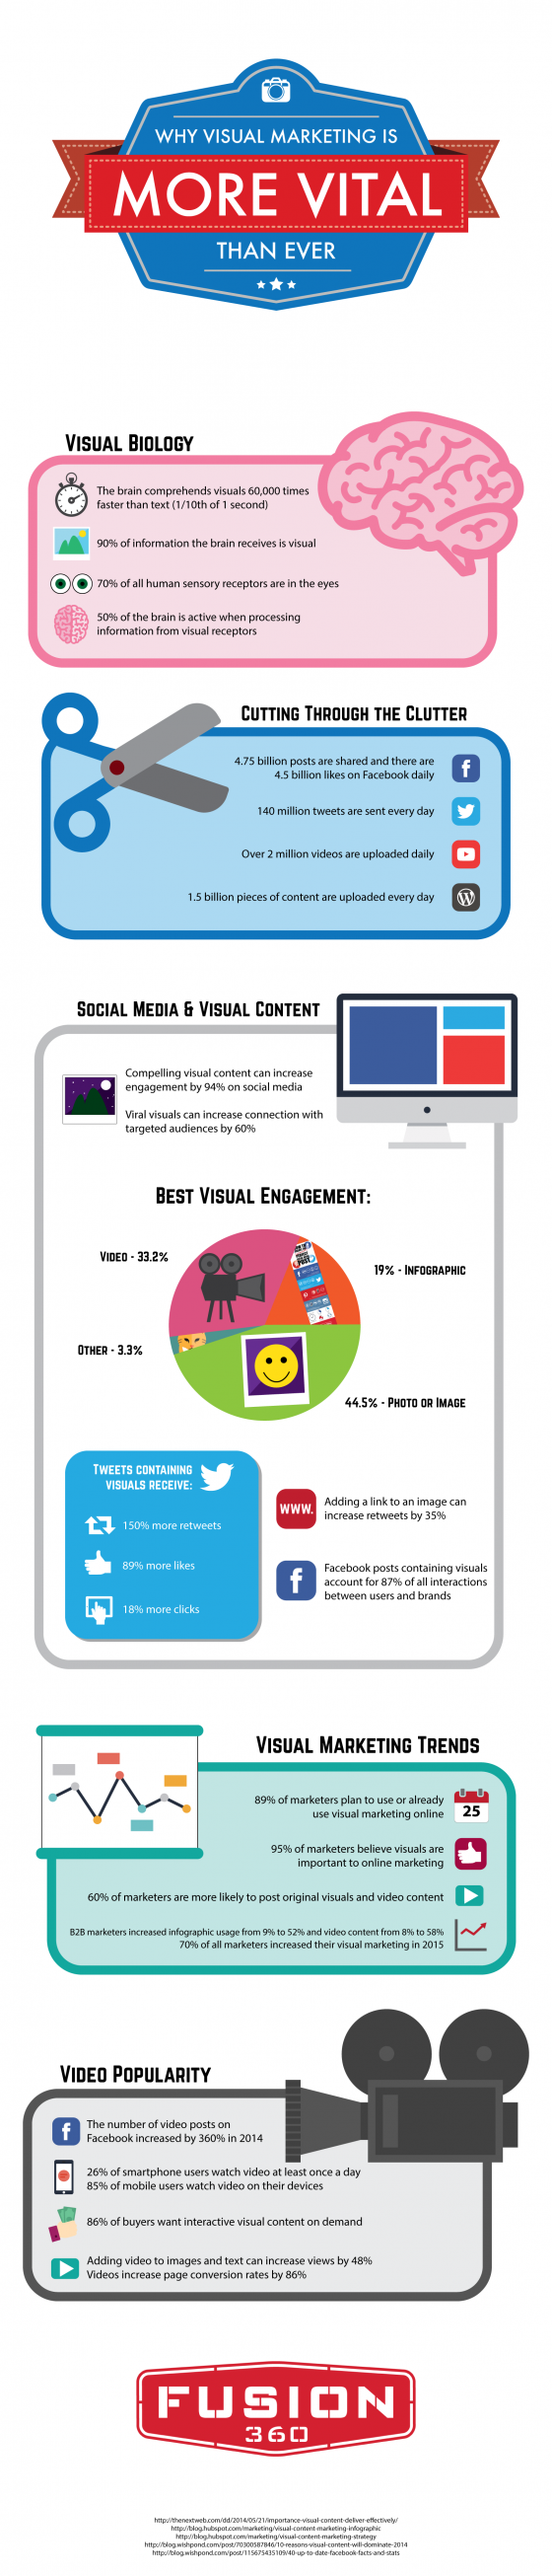 Why Visual Marketing is More Vital Than Ever